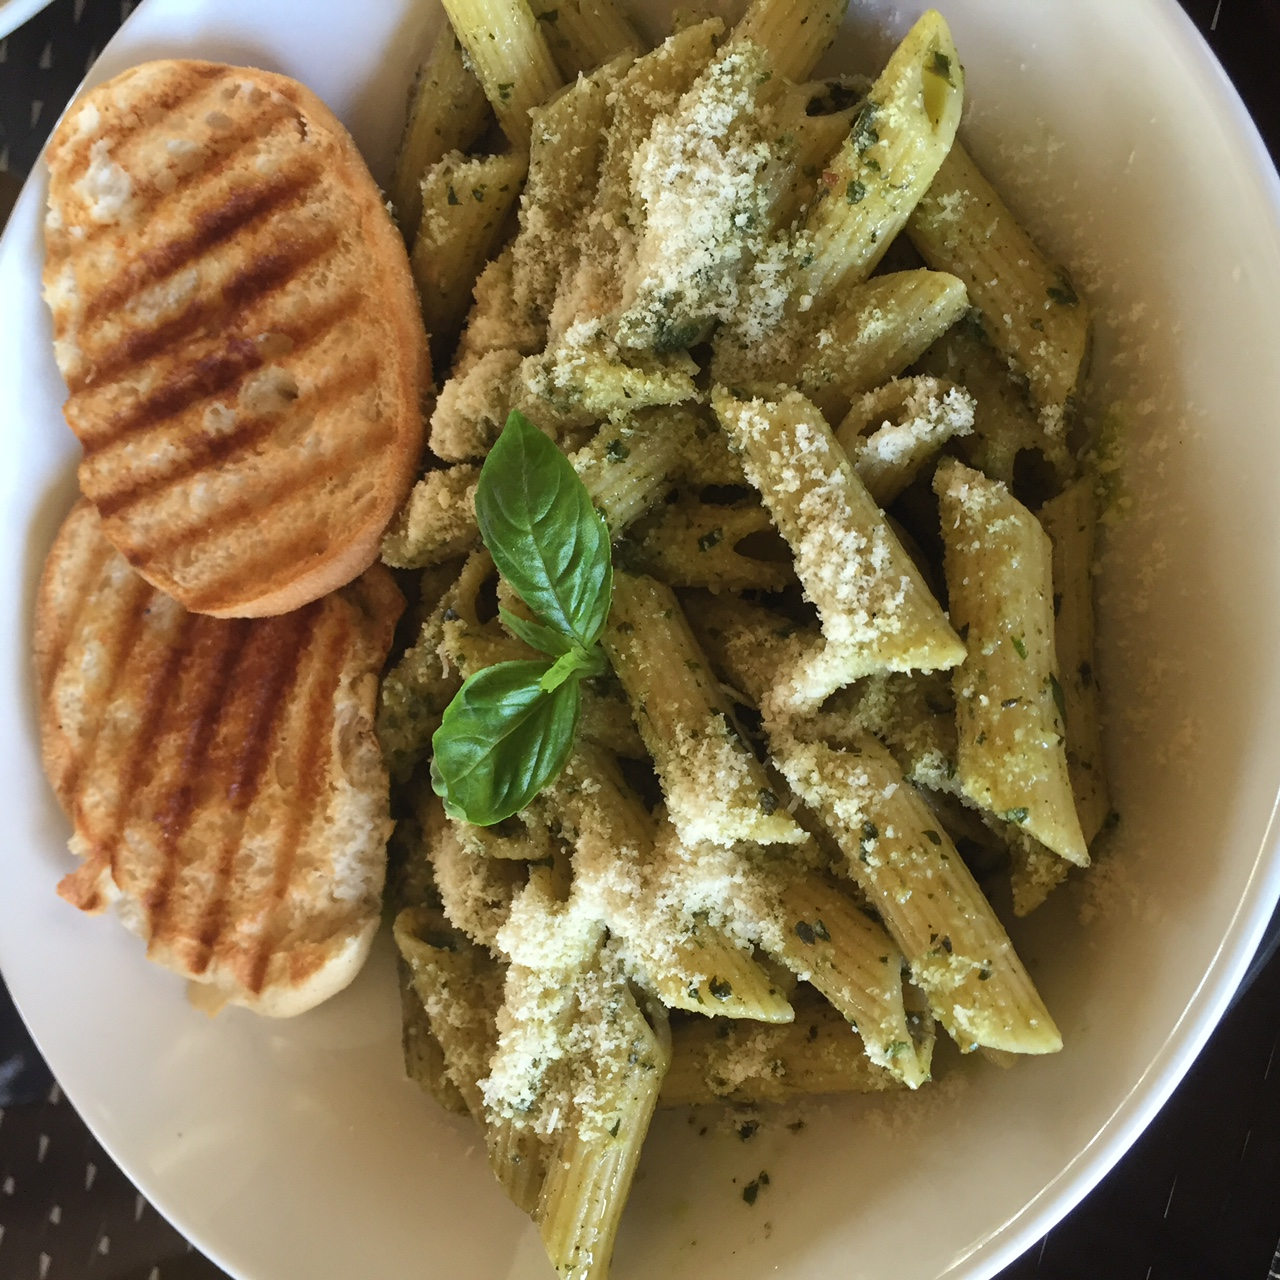 Classic Pesto. I love that they use ingredients fresh from their vegetable patches. You can really taste the difference.